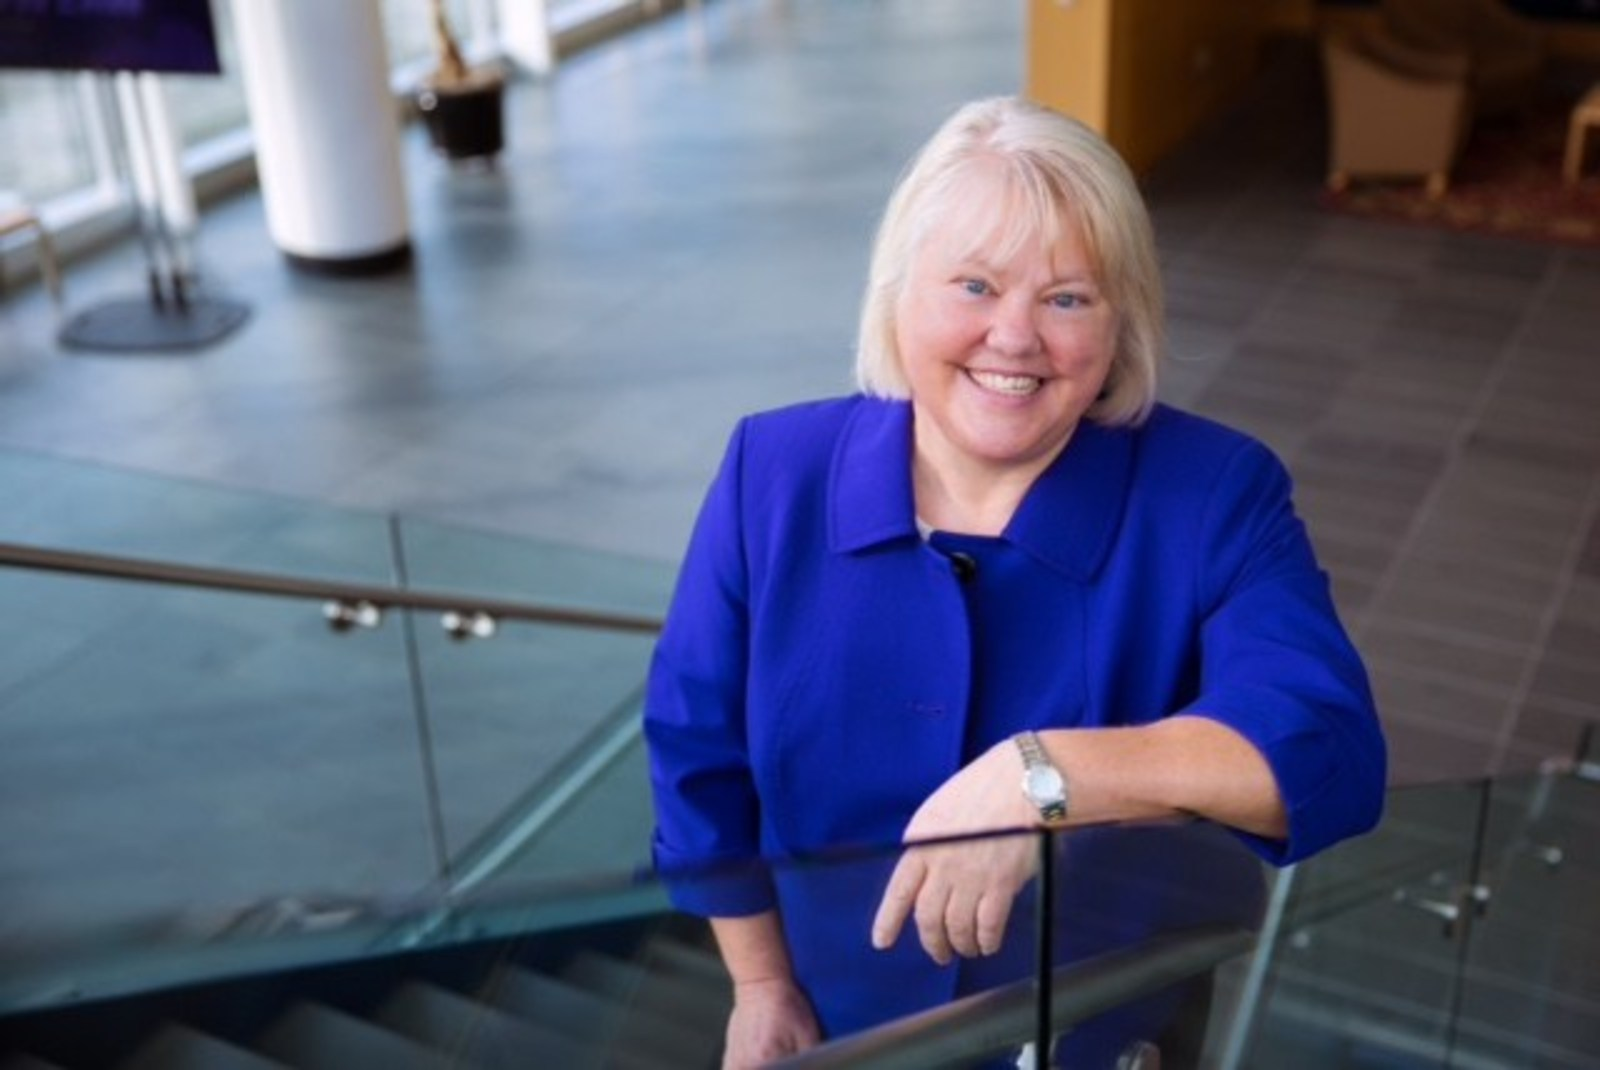 Kellye Y. Testy, President of the Law School Admission Council and AALS Immediate Past President